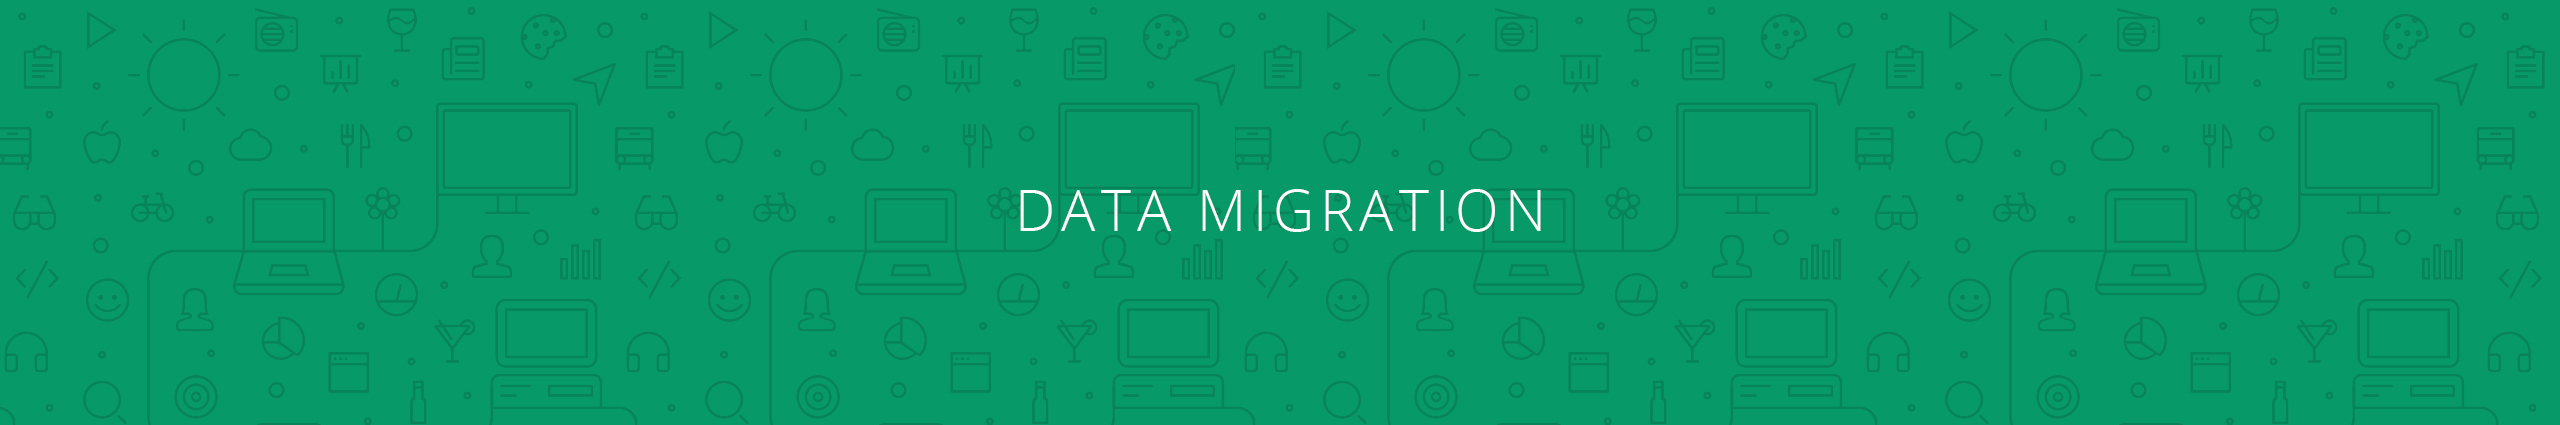 Data-Migration-Page-Header